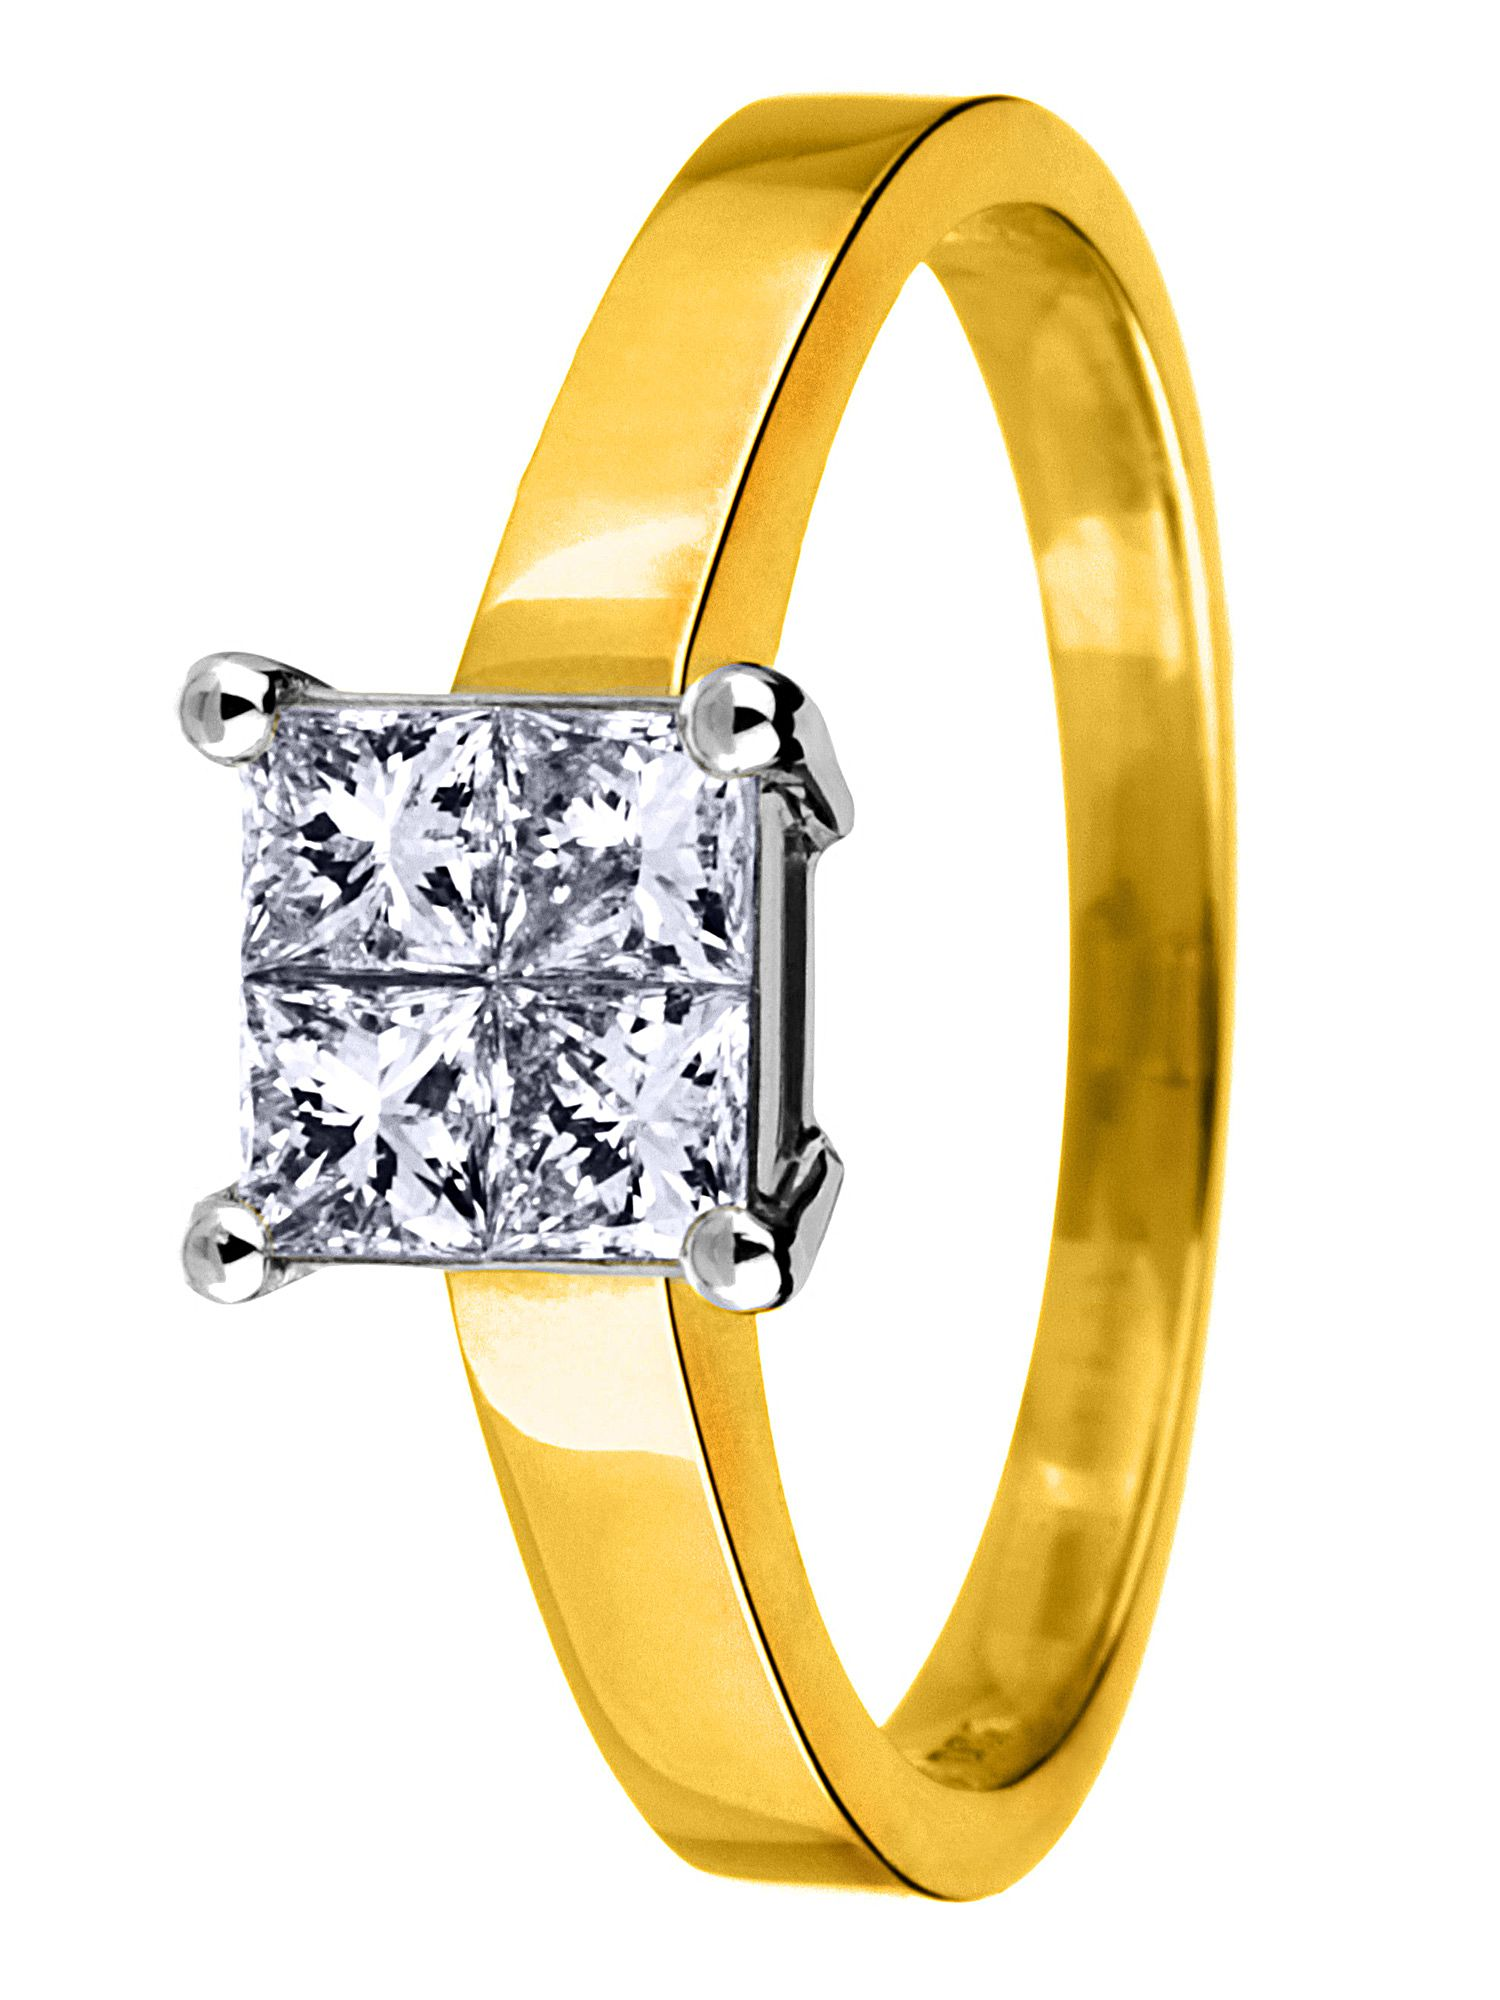 18ct gold 0.50ct solitaire diamond ring Gold